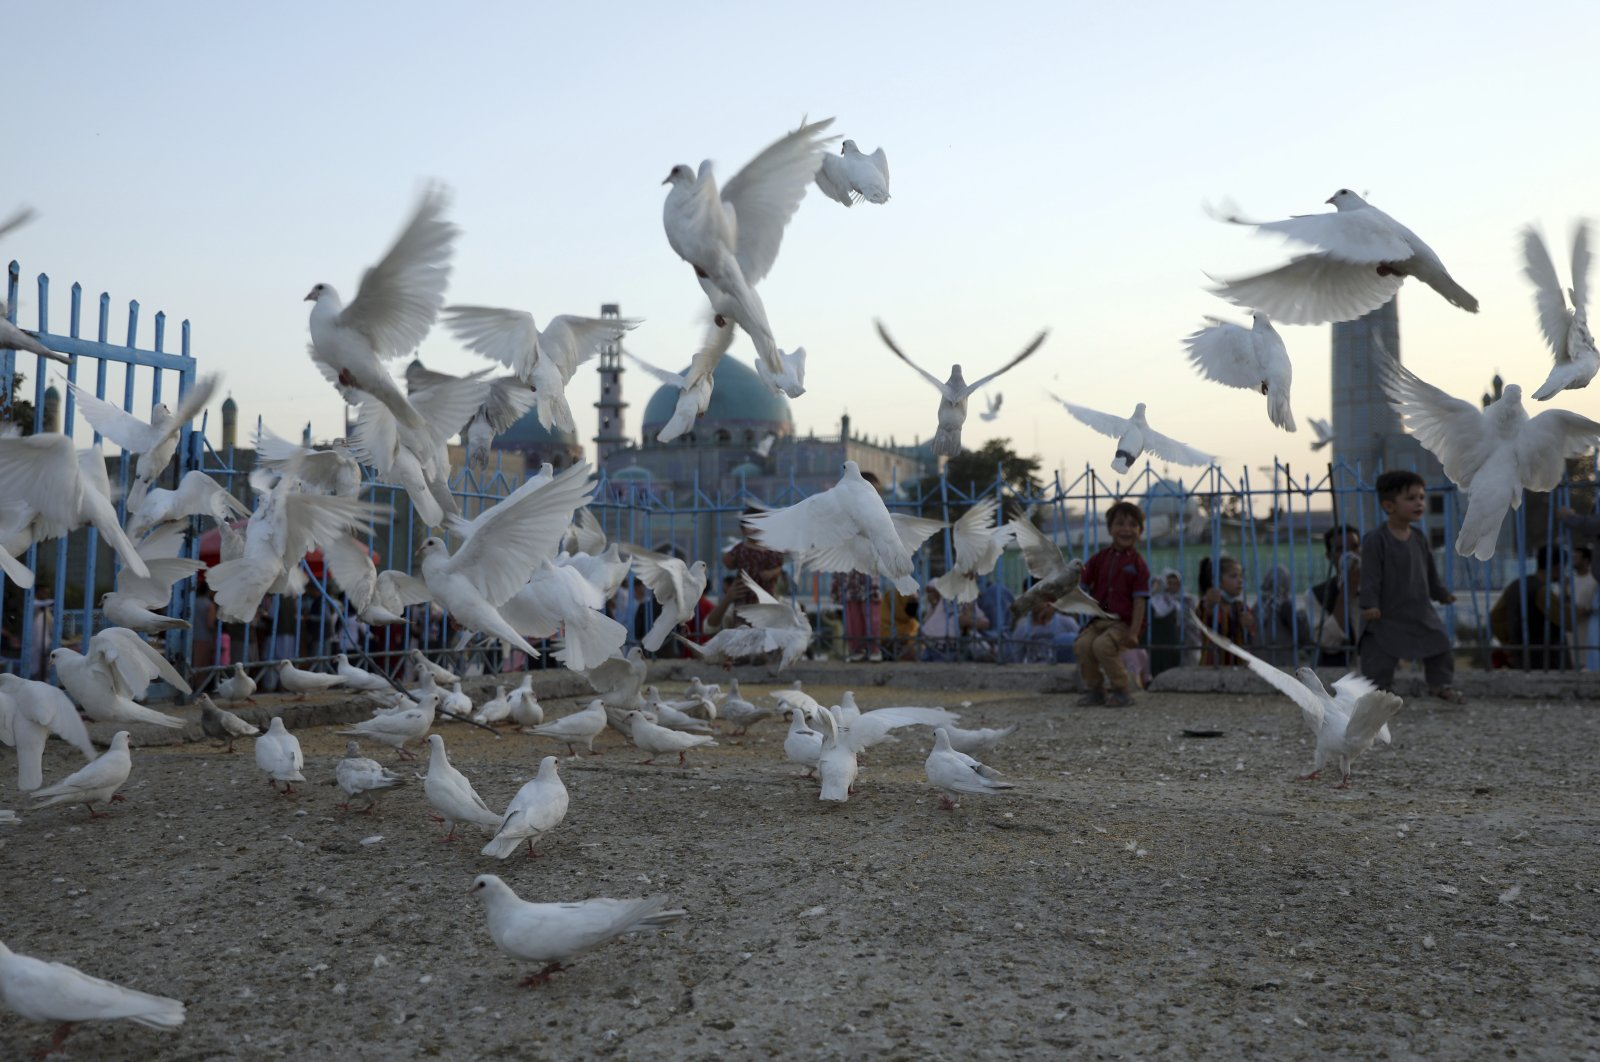 Afghan children play with pigeons in the courtyard of the Hazrat-e-Ali shrine, or Blue Mosque, in Mazar-e-Sharif, north of Kabul, Afghanistan, July 7, 2021. (AP Photo)